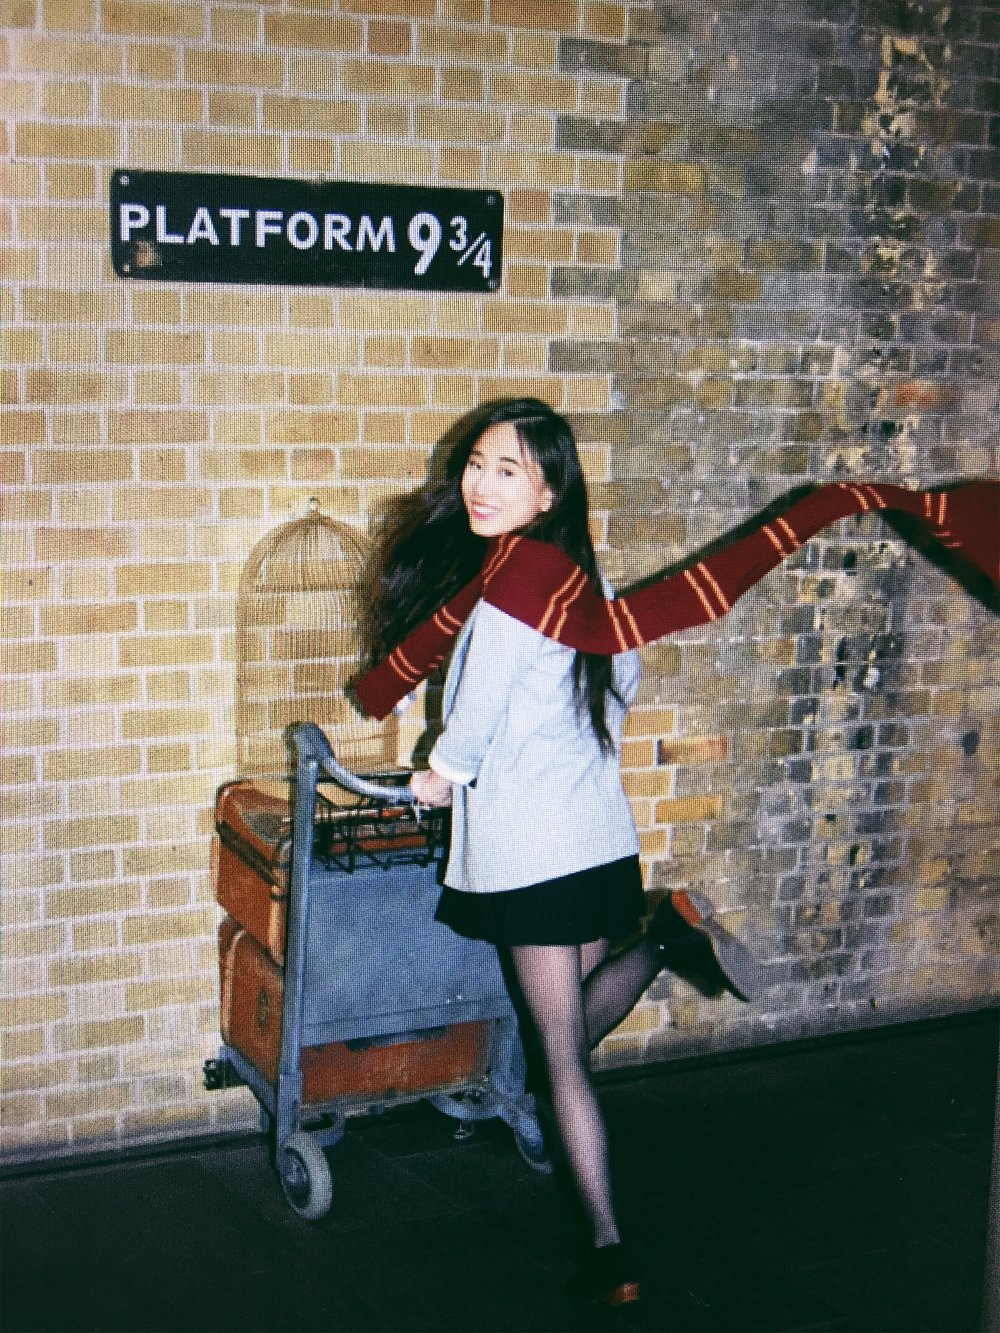 London in 24 Hours - Platform 9¾